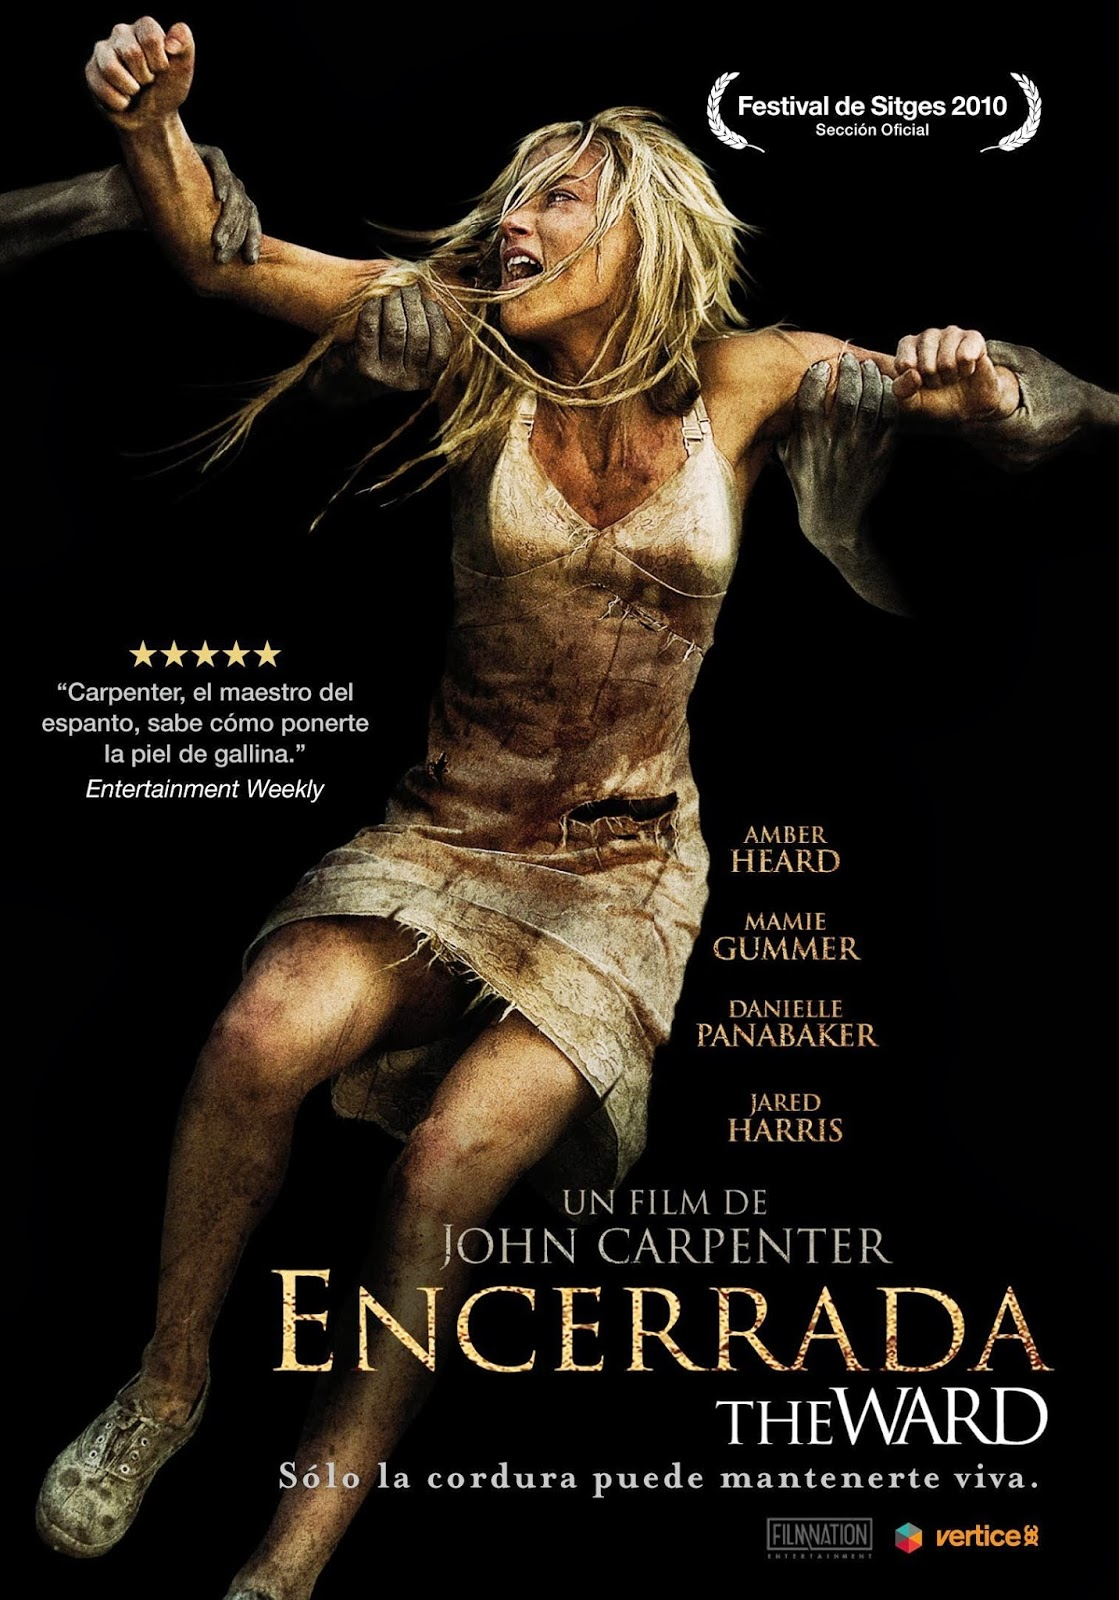 Encerrada (The Ward) (2010)